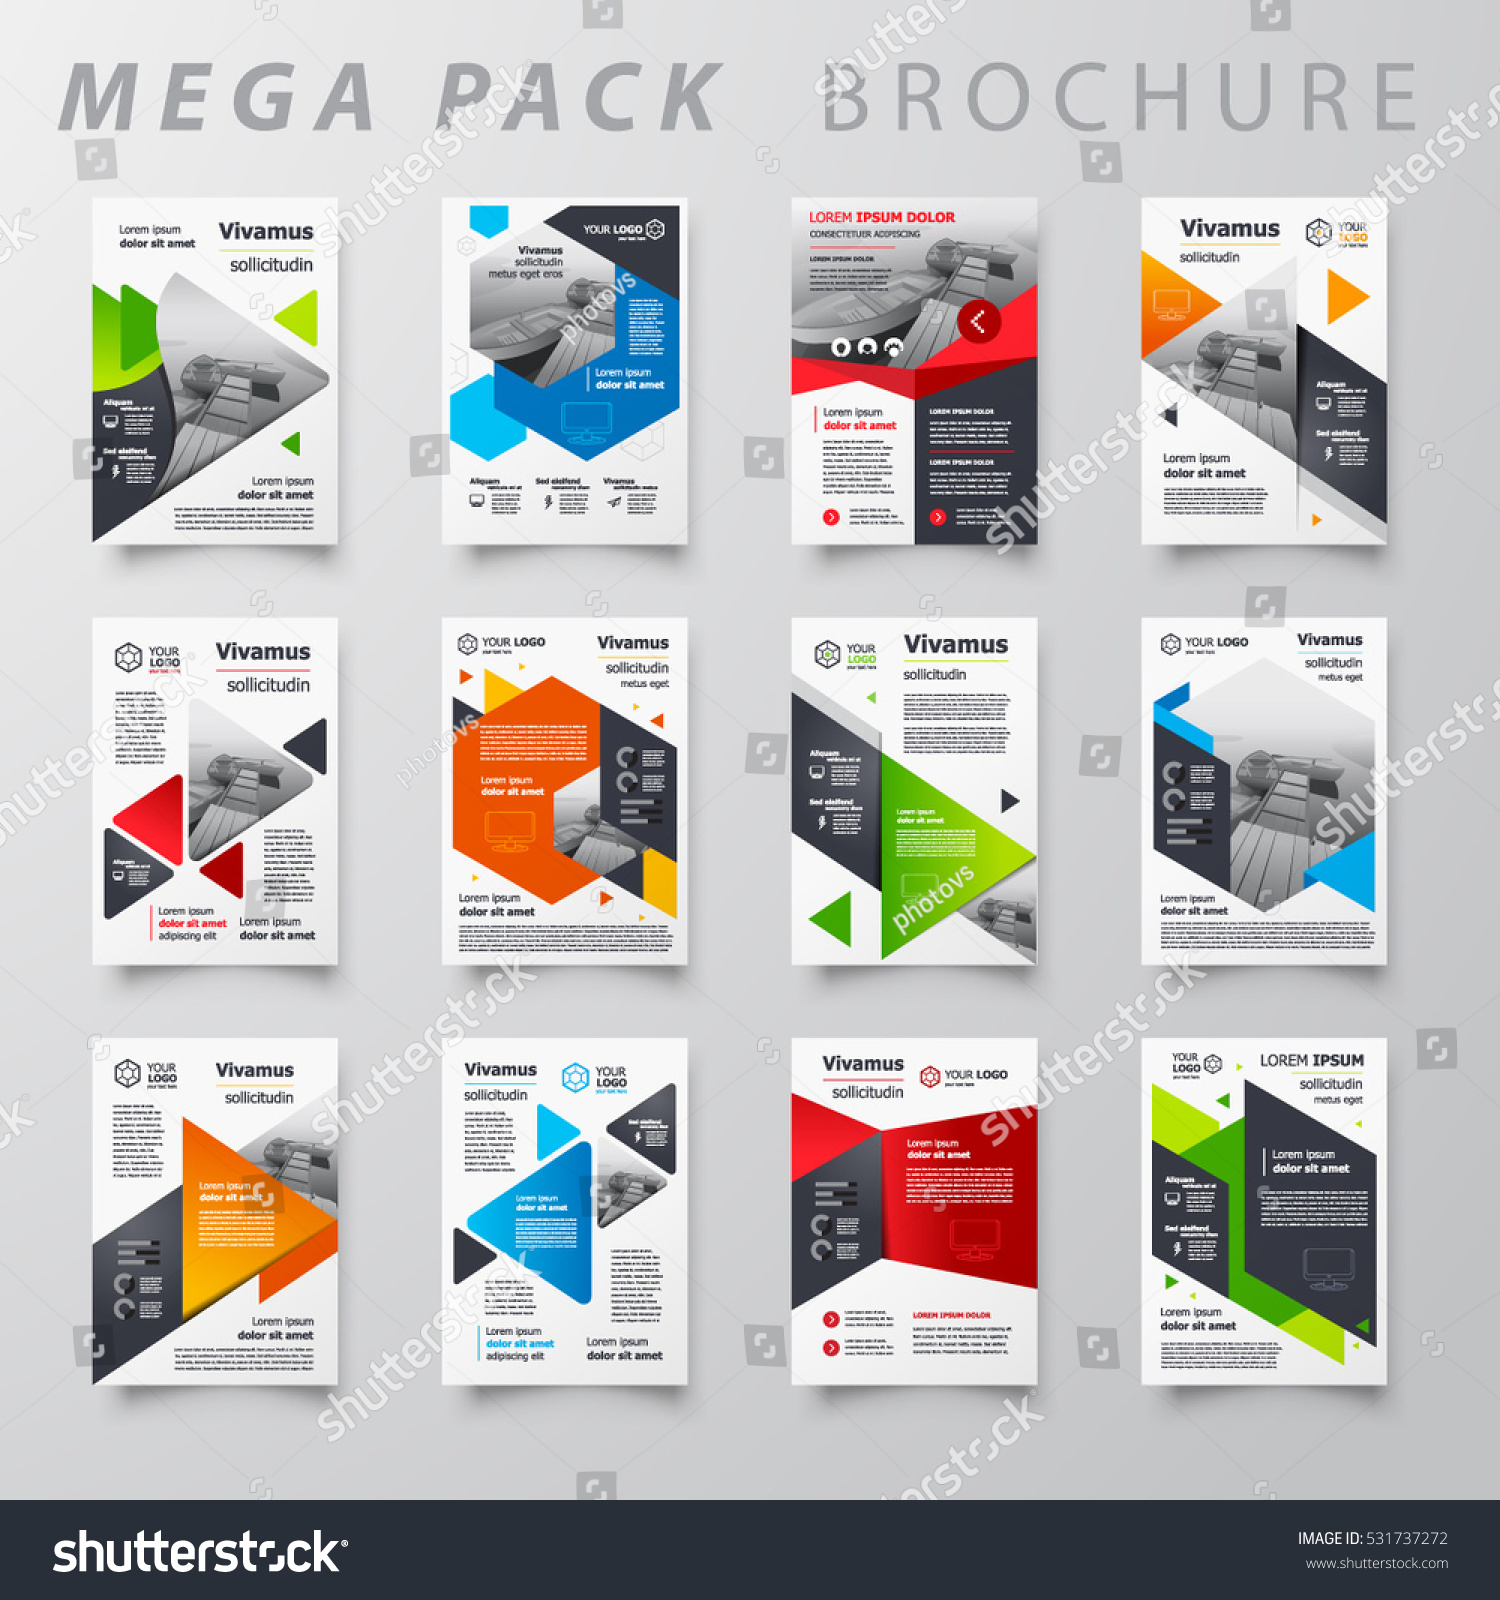 Mega pack brochure design template flyer stock vector for Creative brochure template